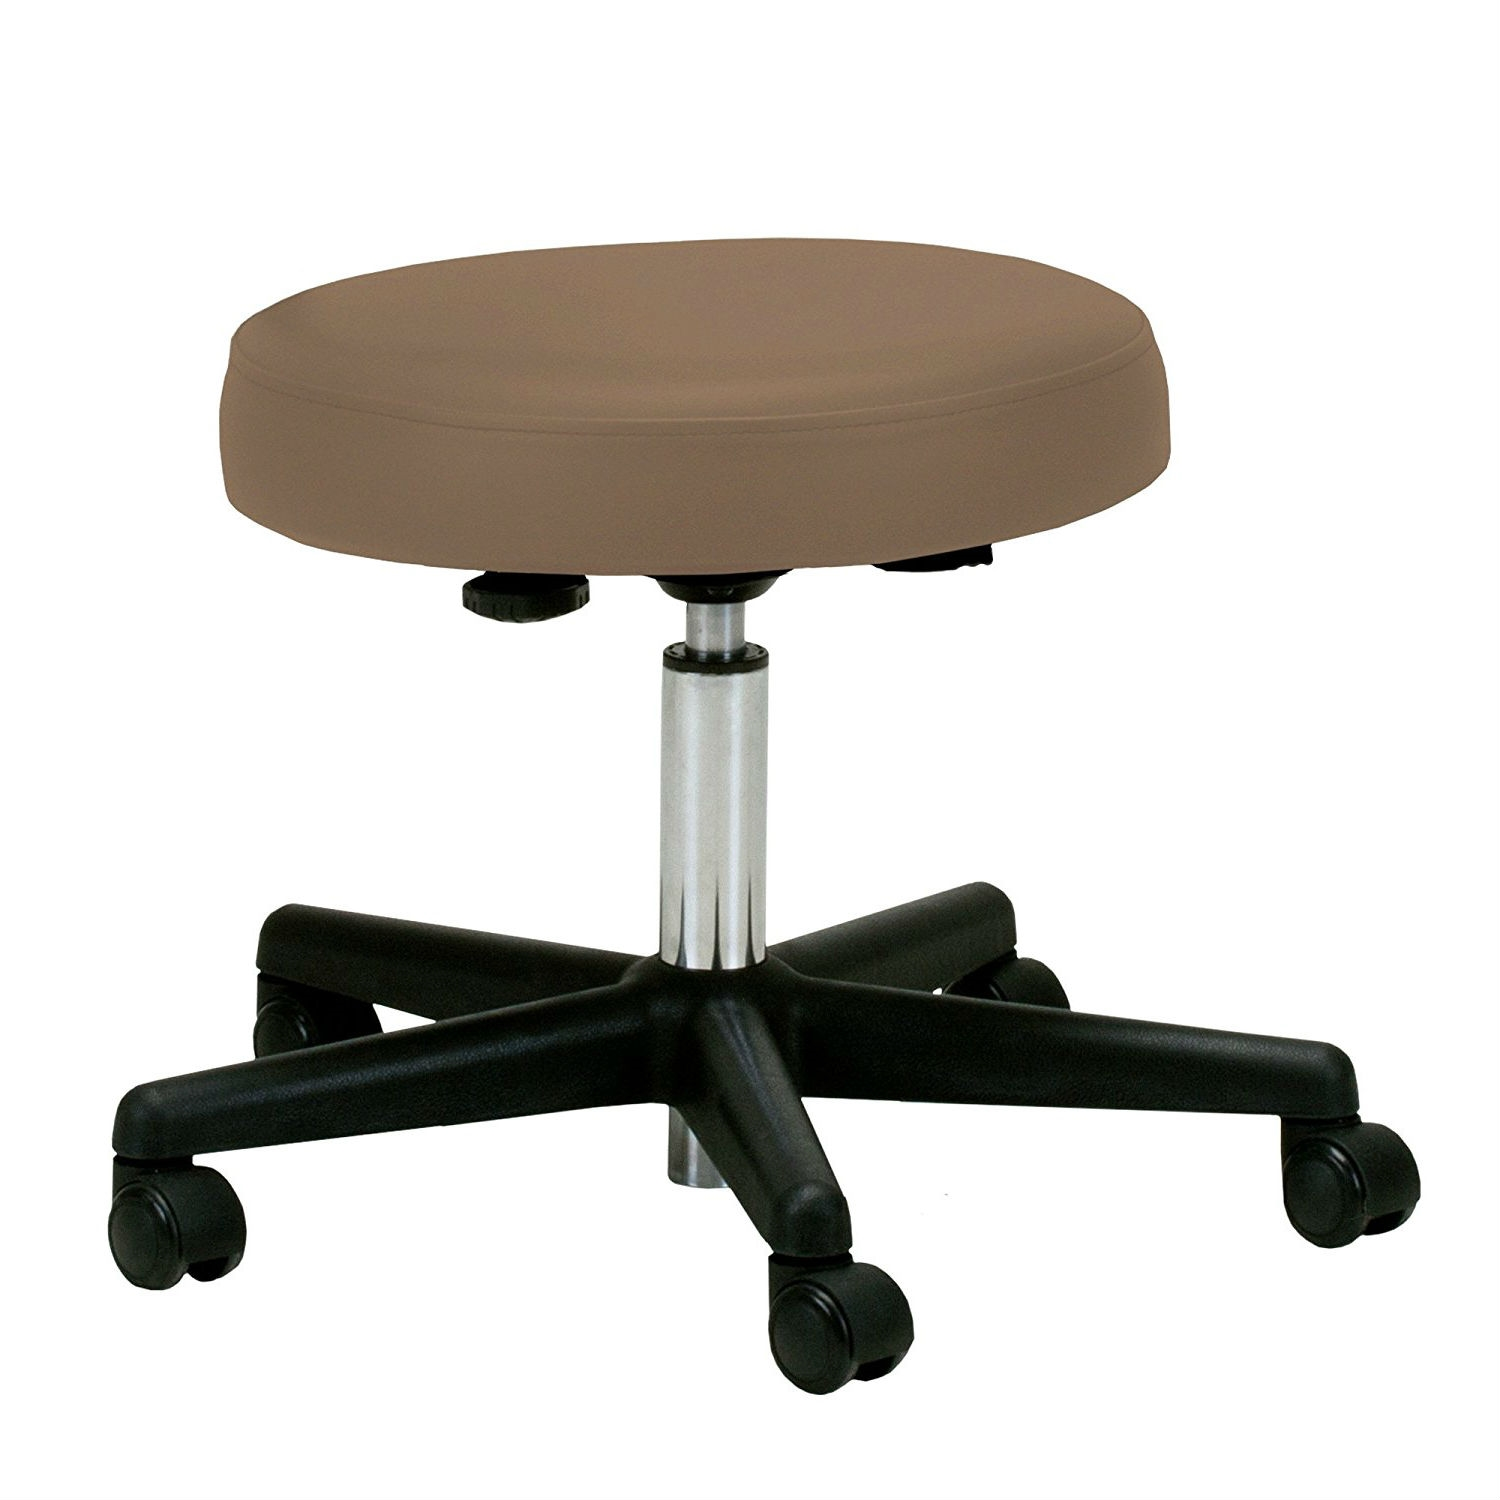 Peachy Adjustable Height Pneumatic Rolling Stool With Latte Brown Padded Seat Ibusinesslaw Wood Chair Design Ideas Ibusinesslaworg